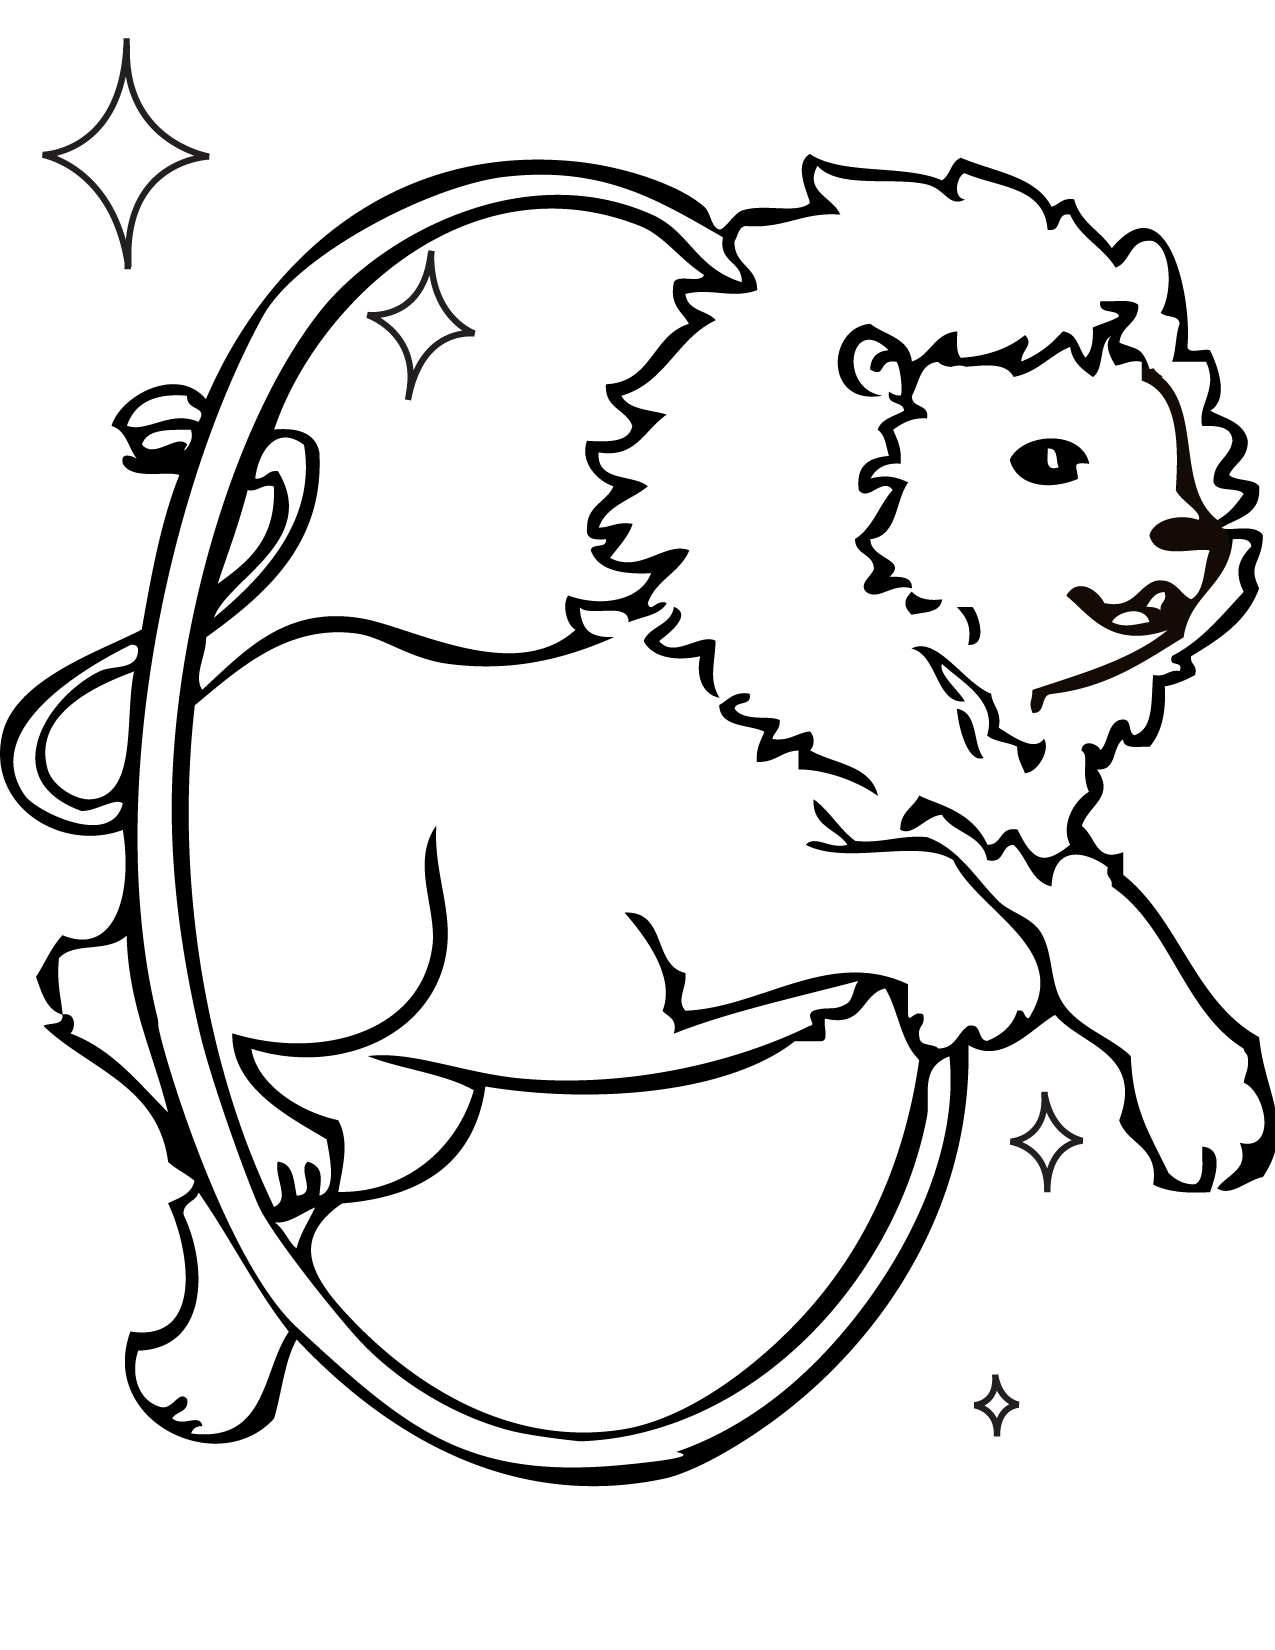 1275x1650 Circus Coloring Pages For Preschool Print The Vintage Item